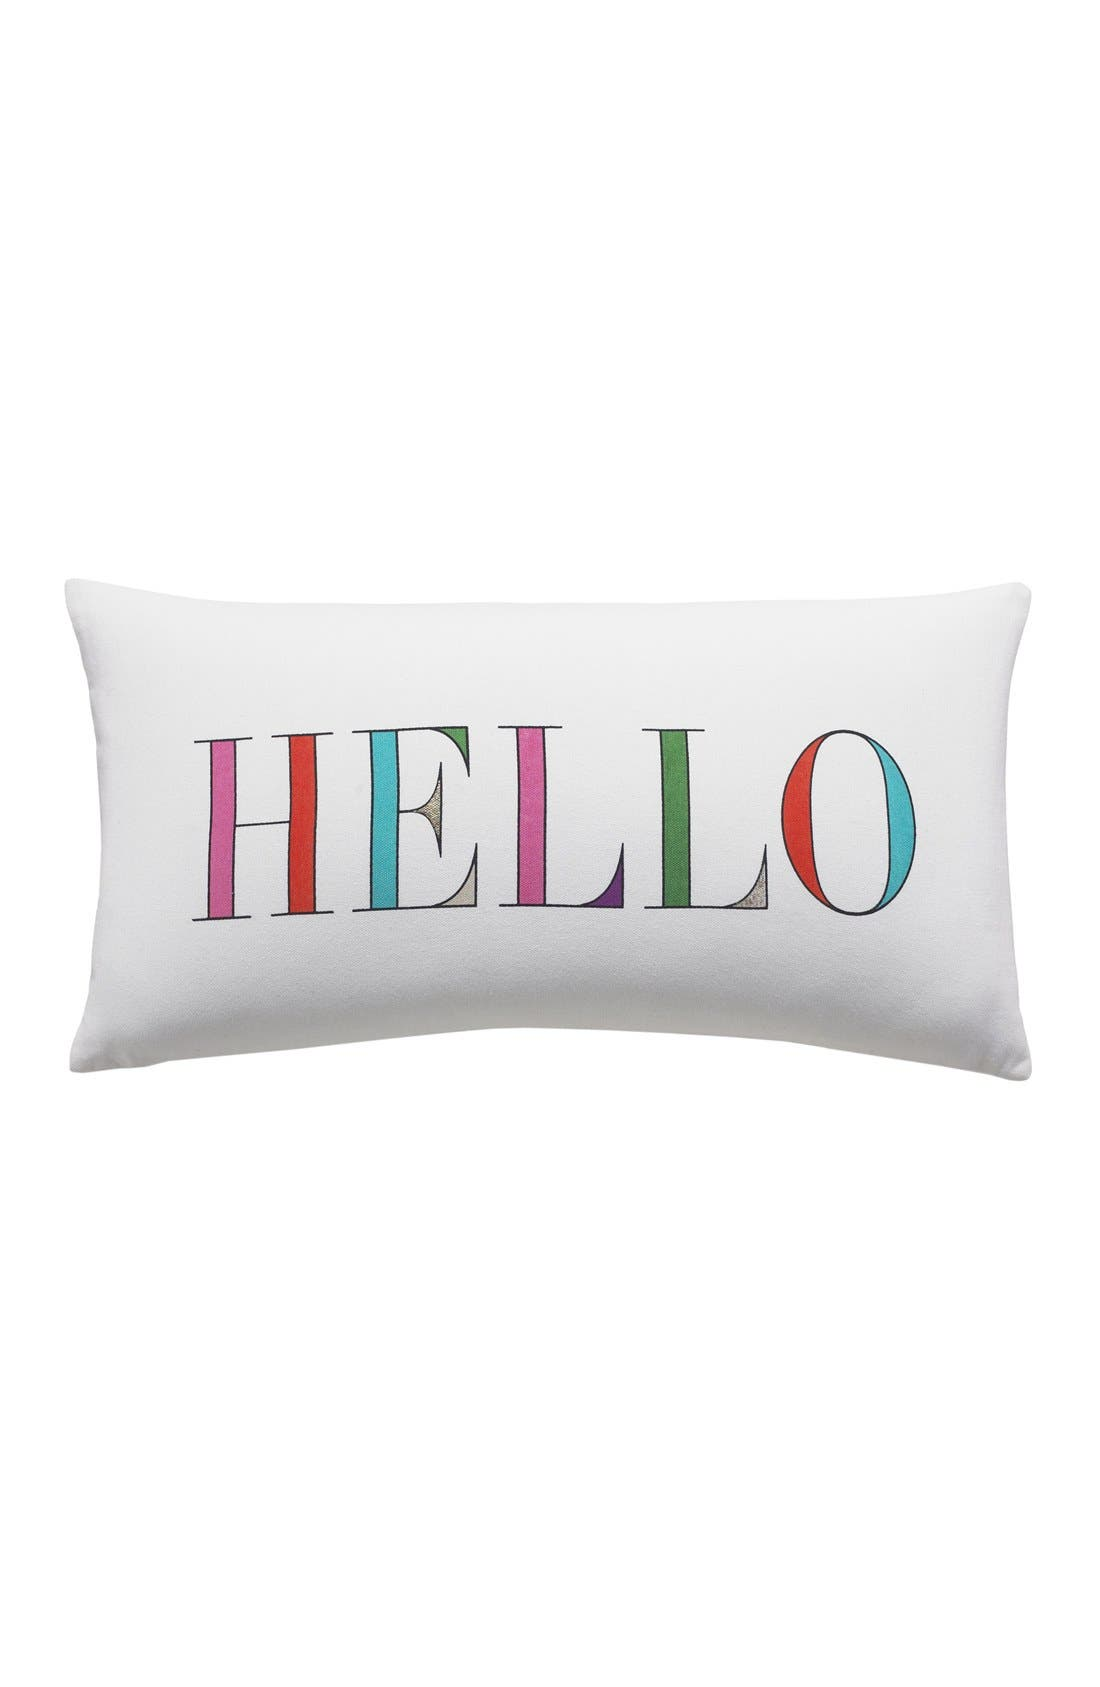 kate spade new york 'hello' accent pillow